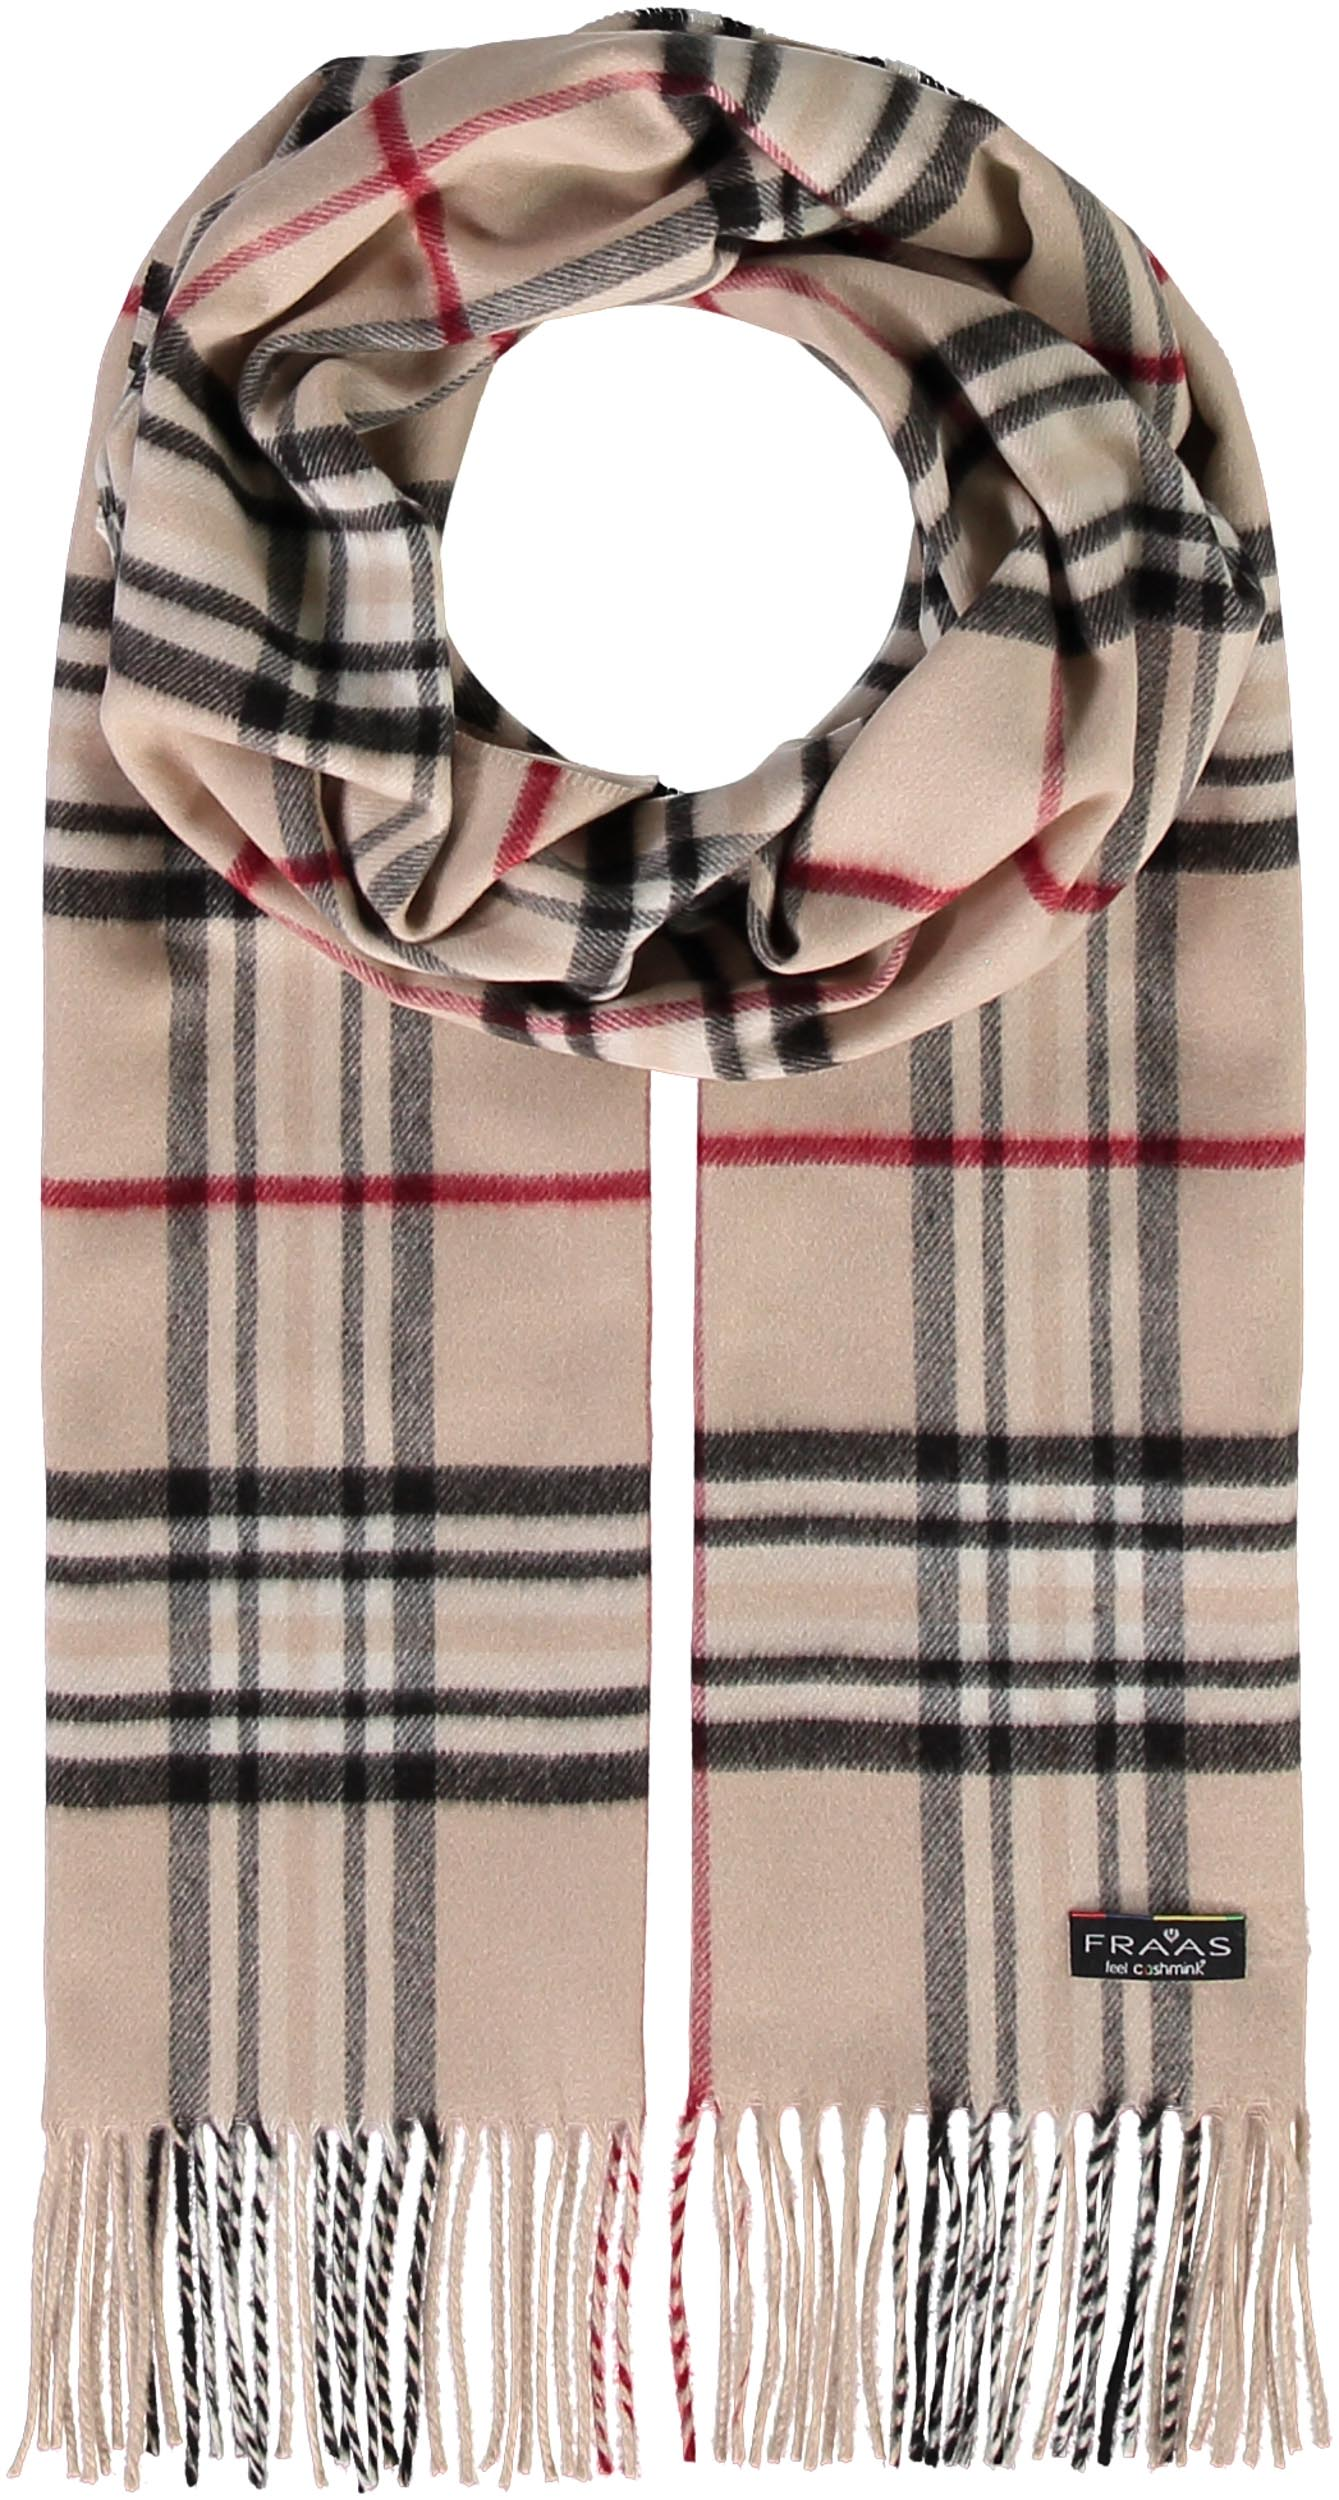 FRAAS Plaid Oversized Cashmink® Scarf